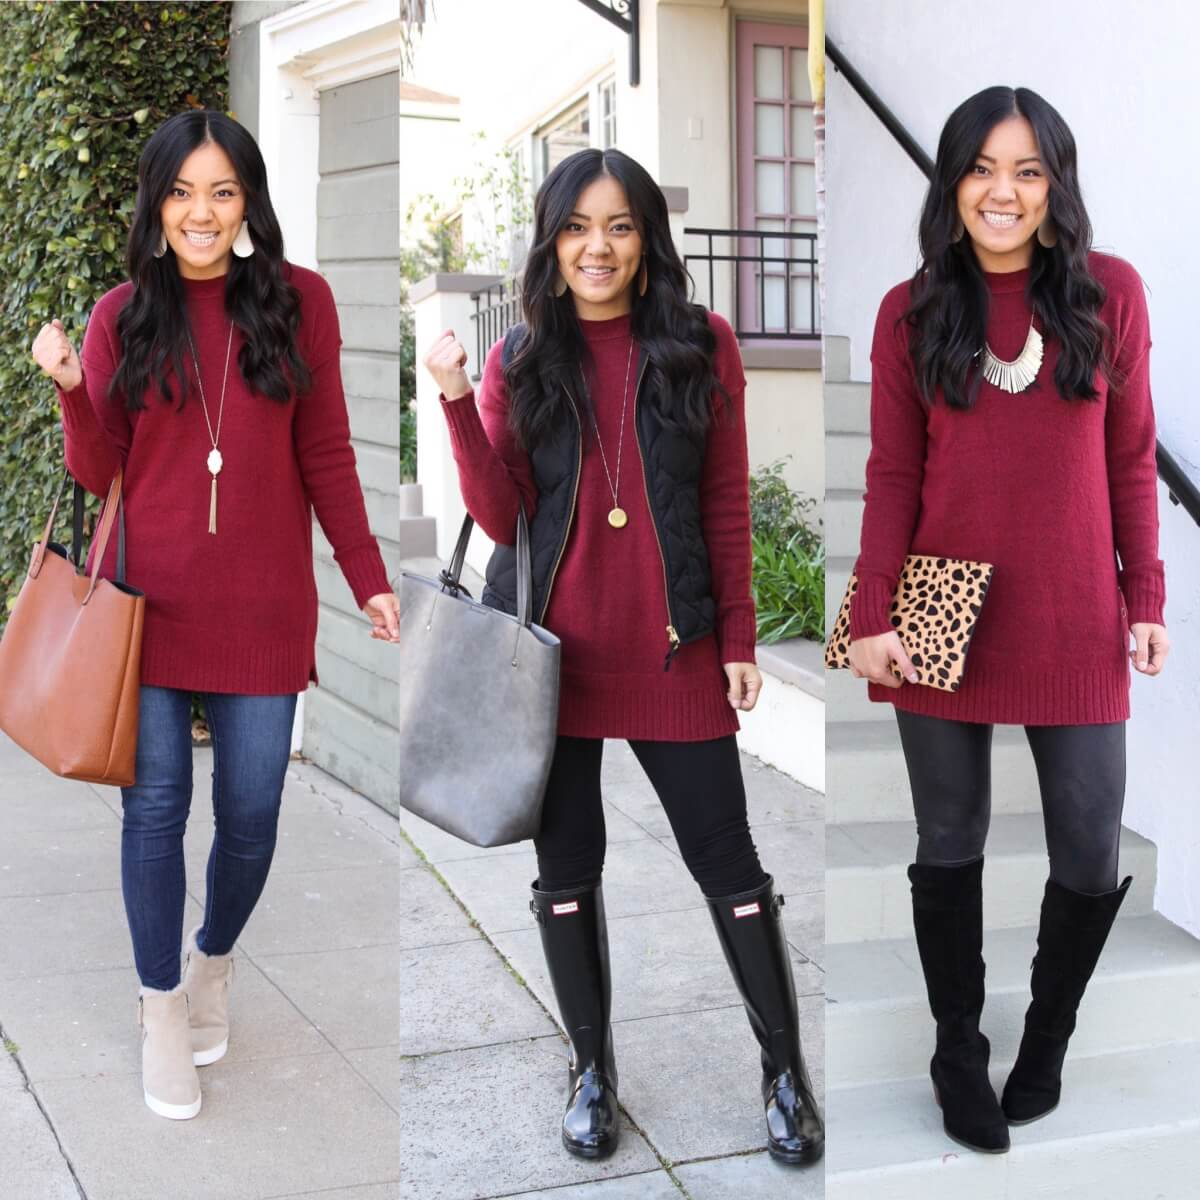 3 Maroon Sweater Outfits